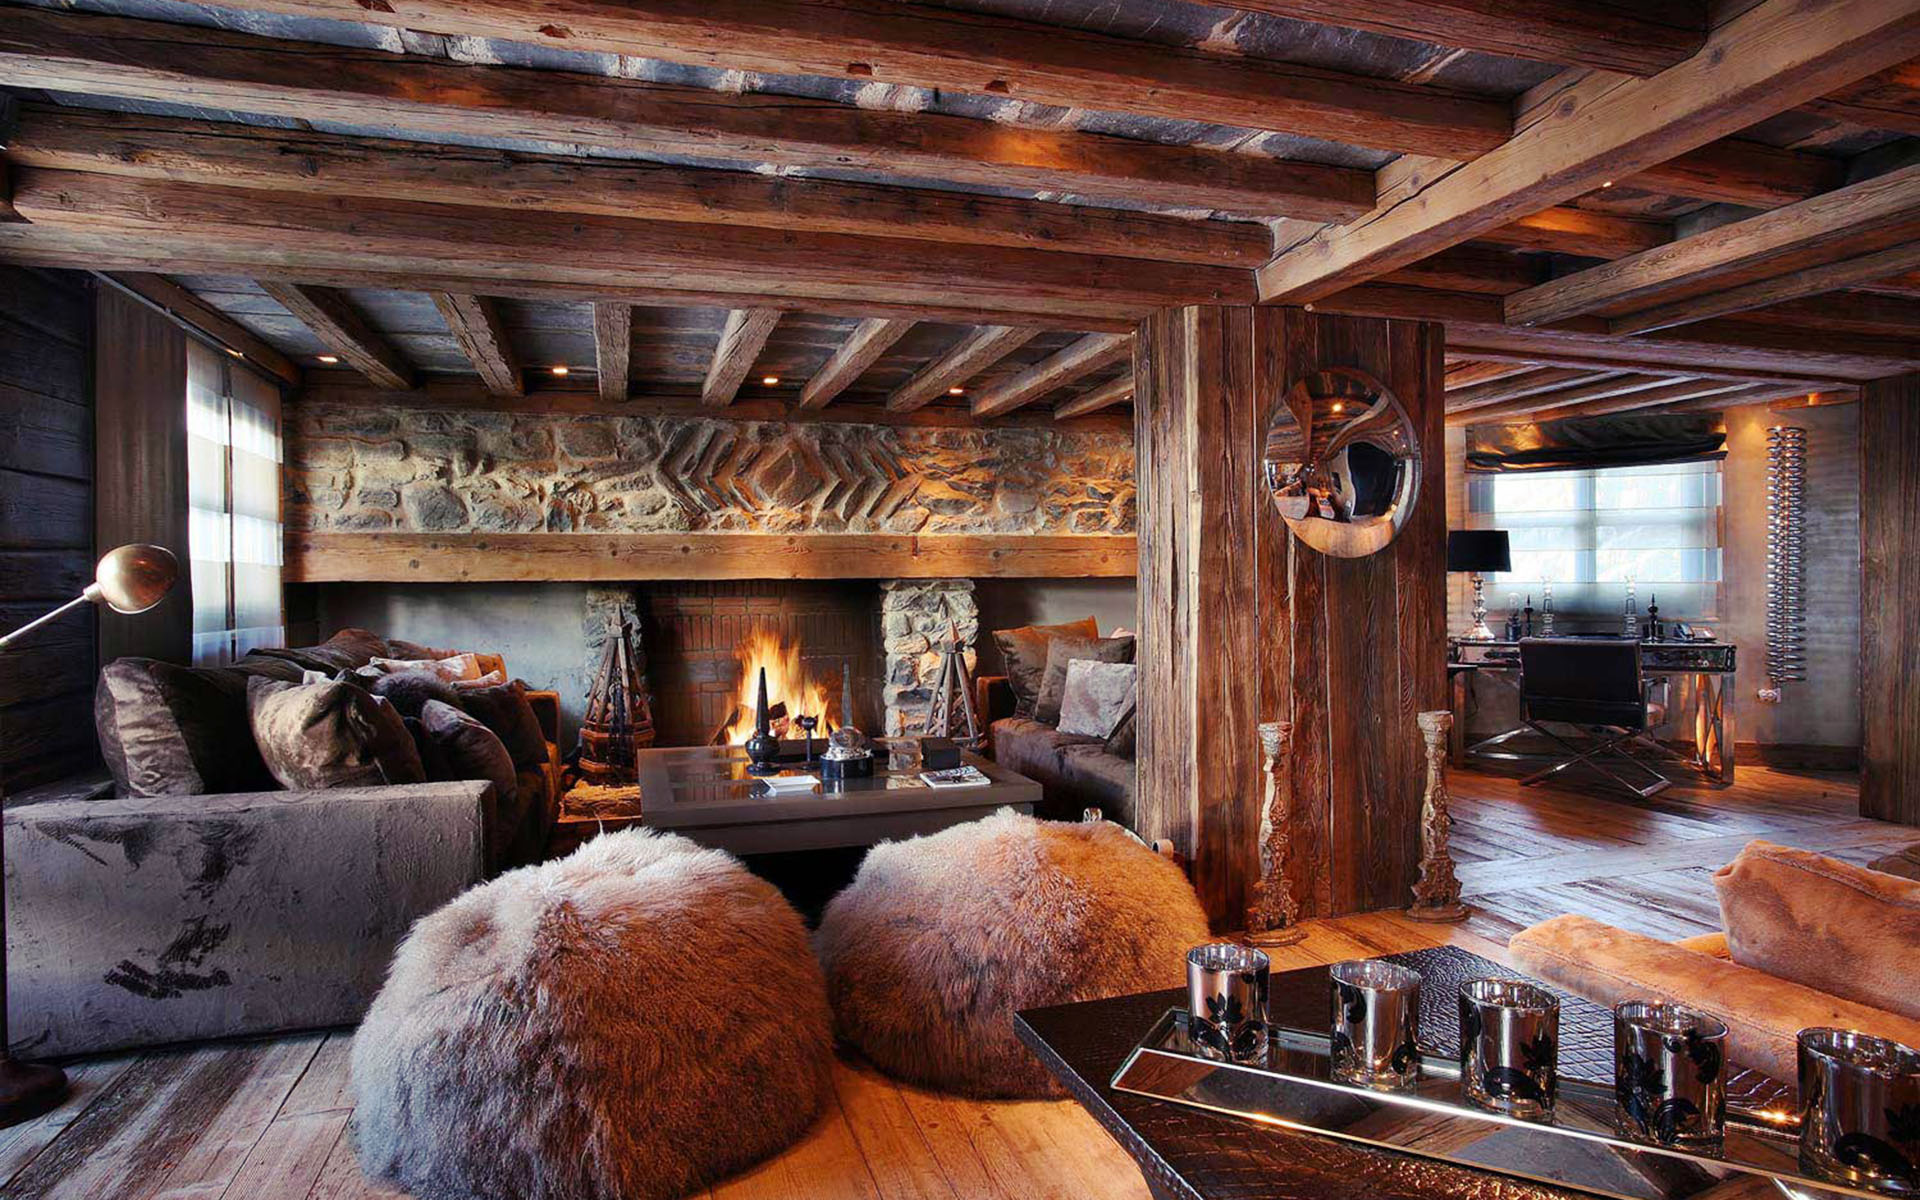 290/CHALETS/ROCH/saint_roch_courchevel_appartement_roch_2.jpg